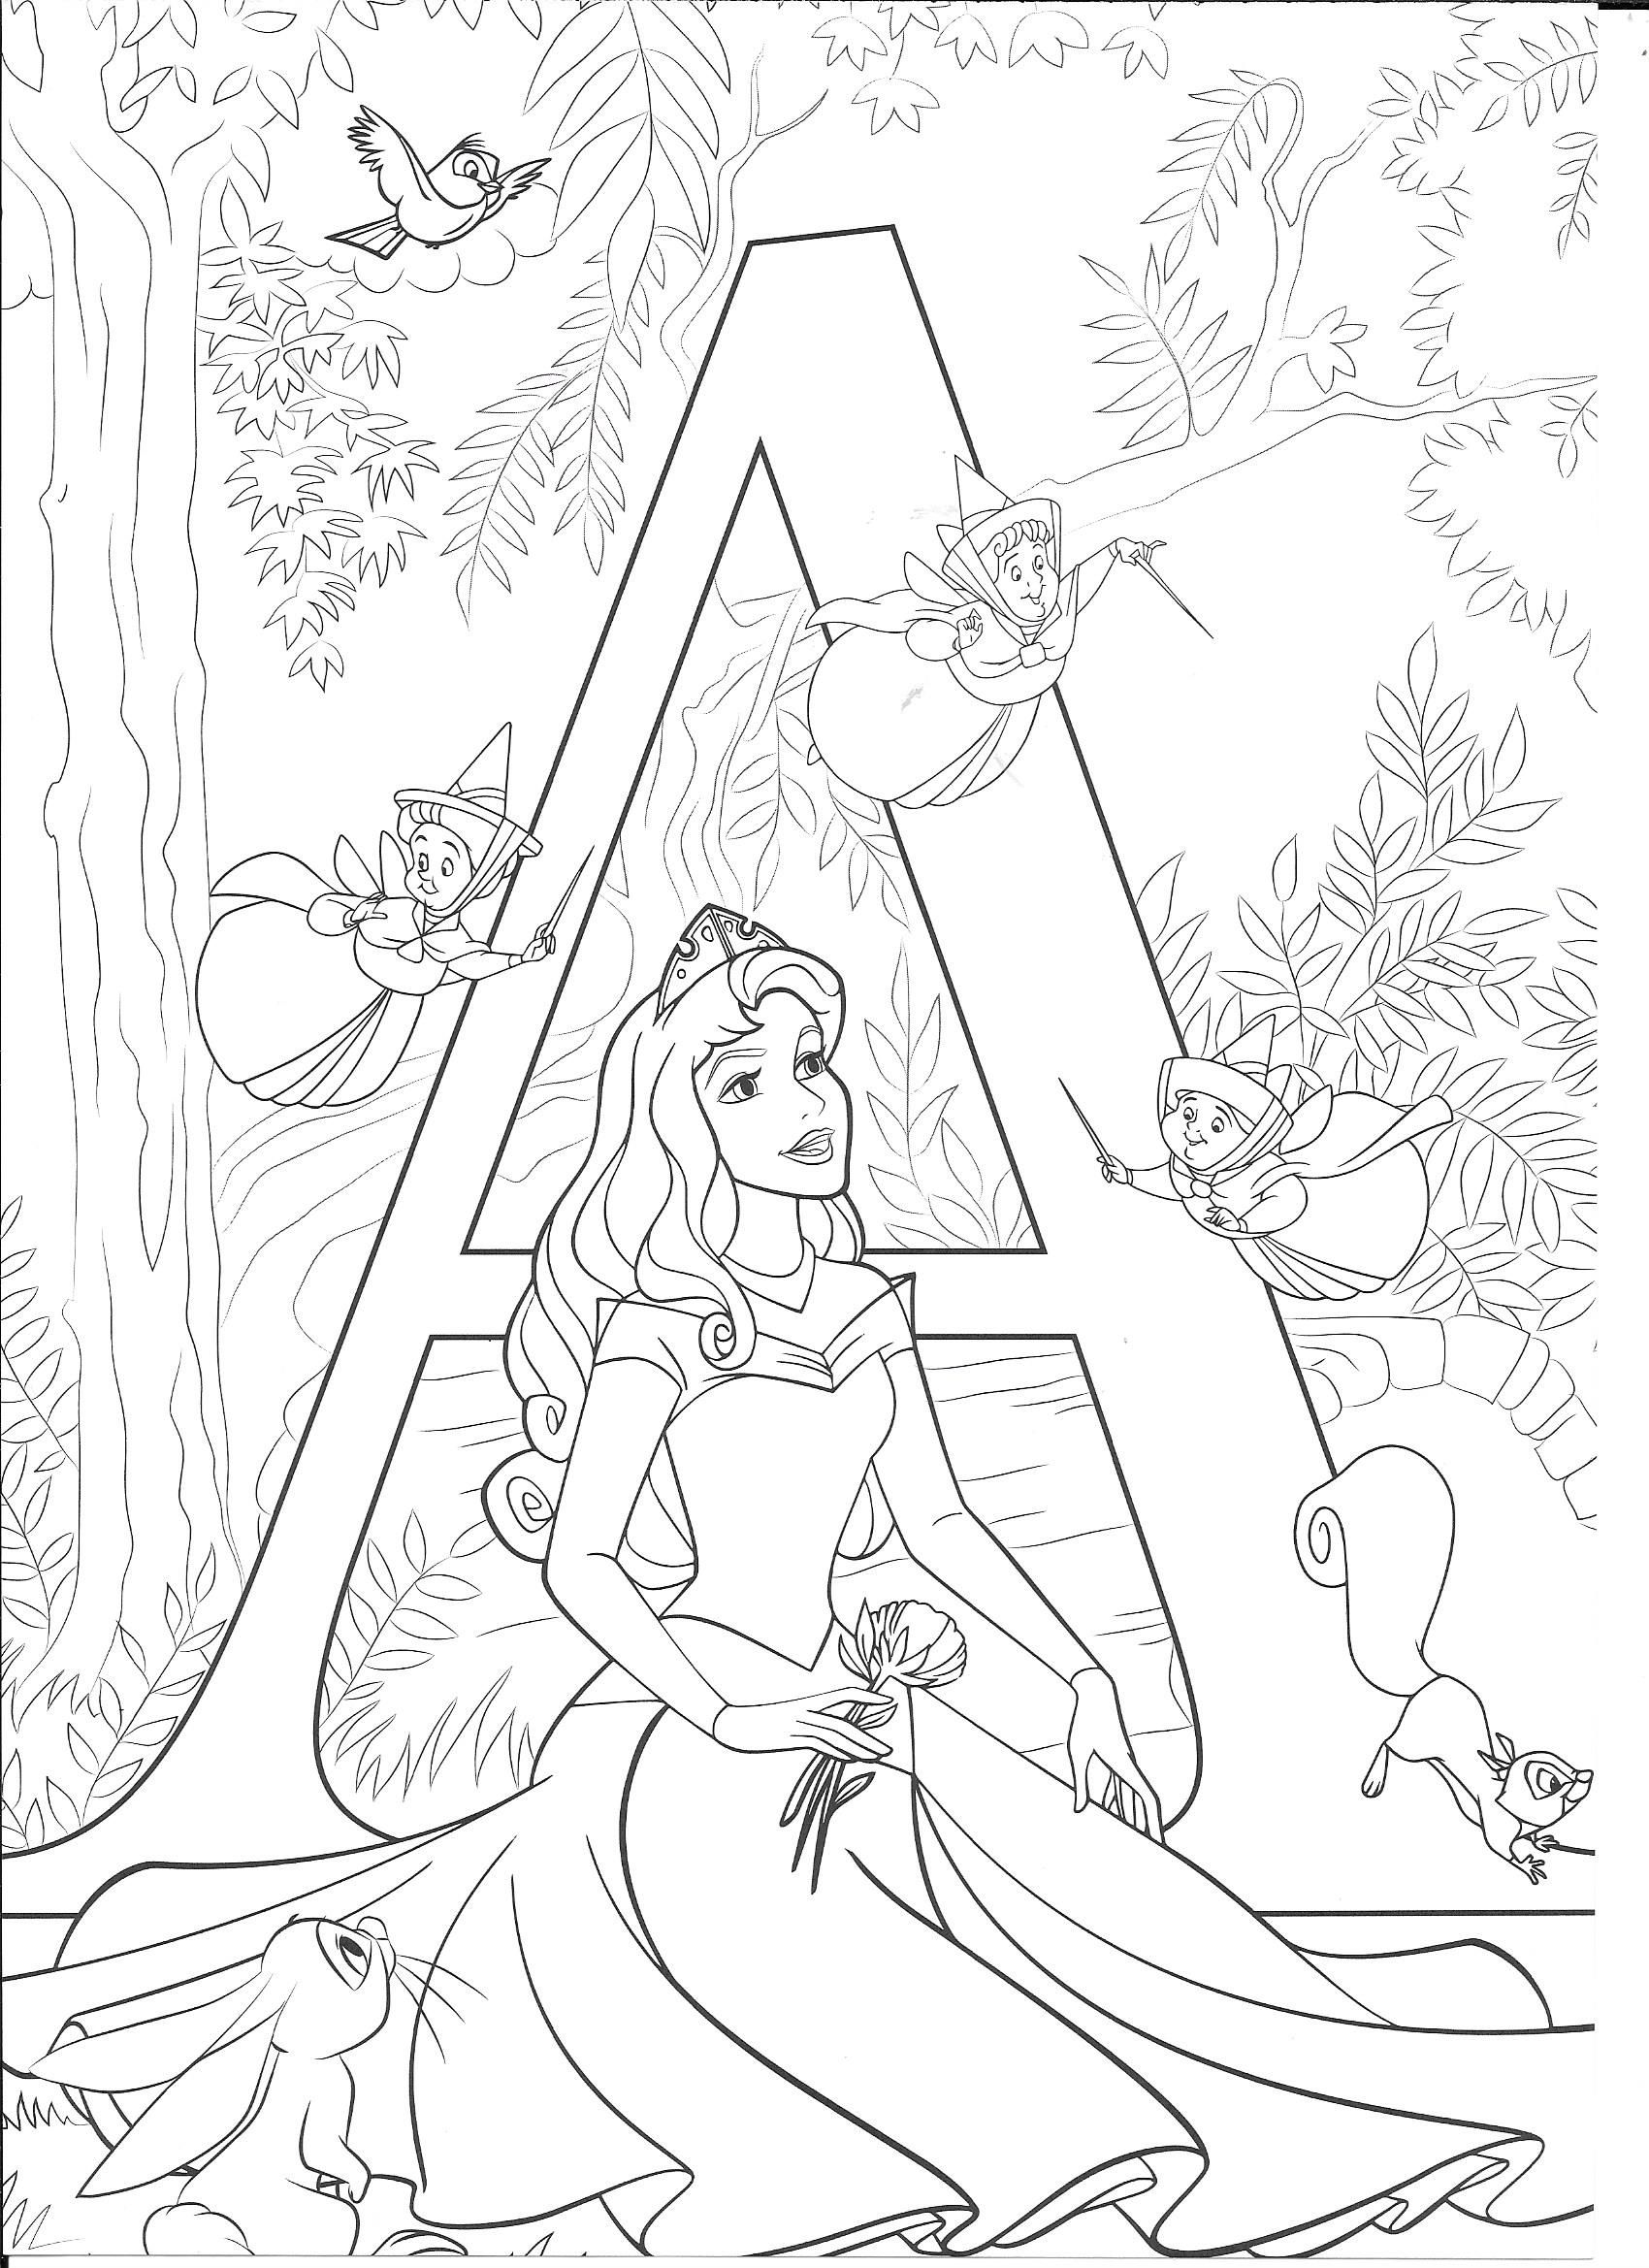 A For Aurora Abc Coloring Pages Disney Princess Coloring Pages Disney Coloring Sheets